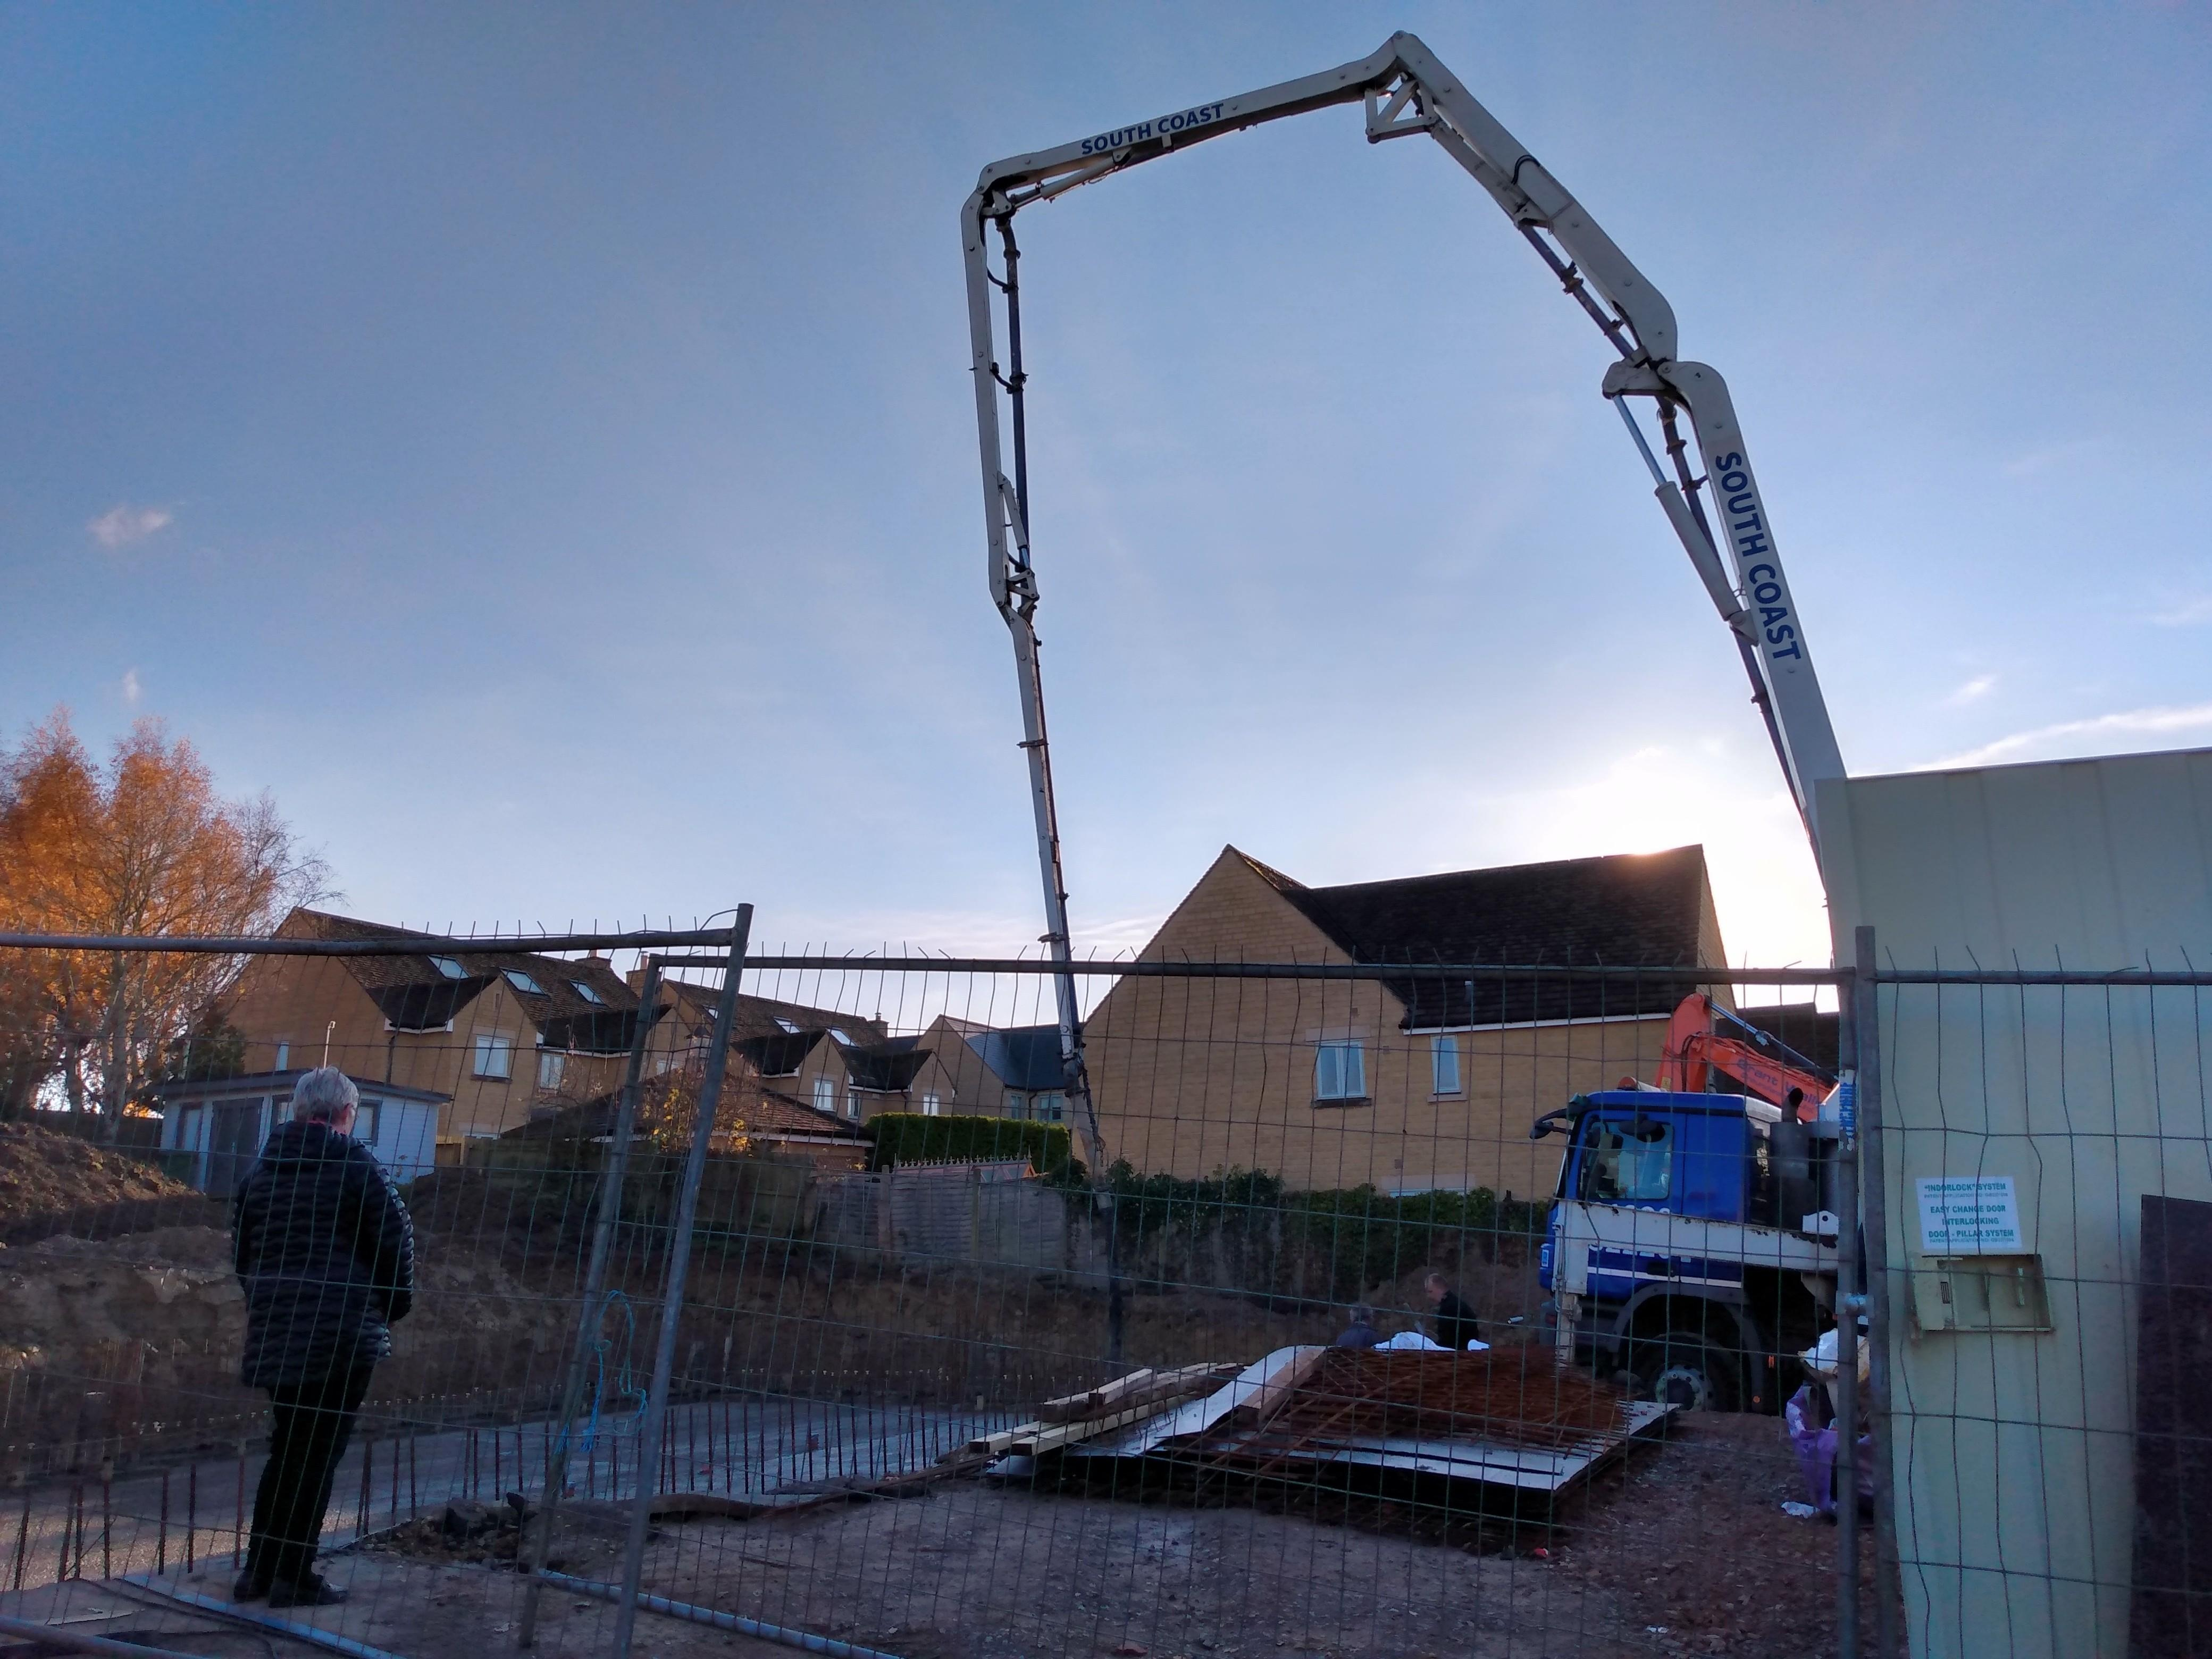 Week 9 - The Big Pour